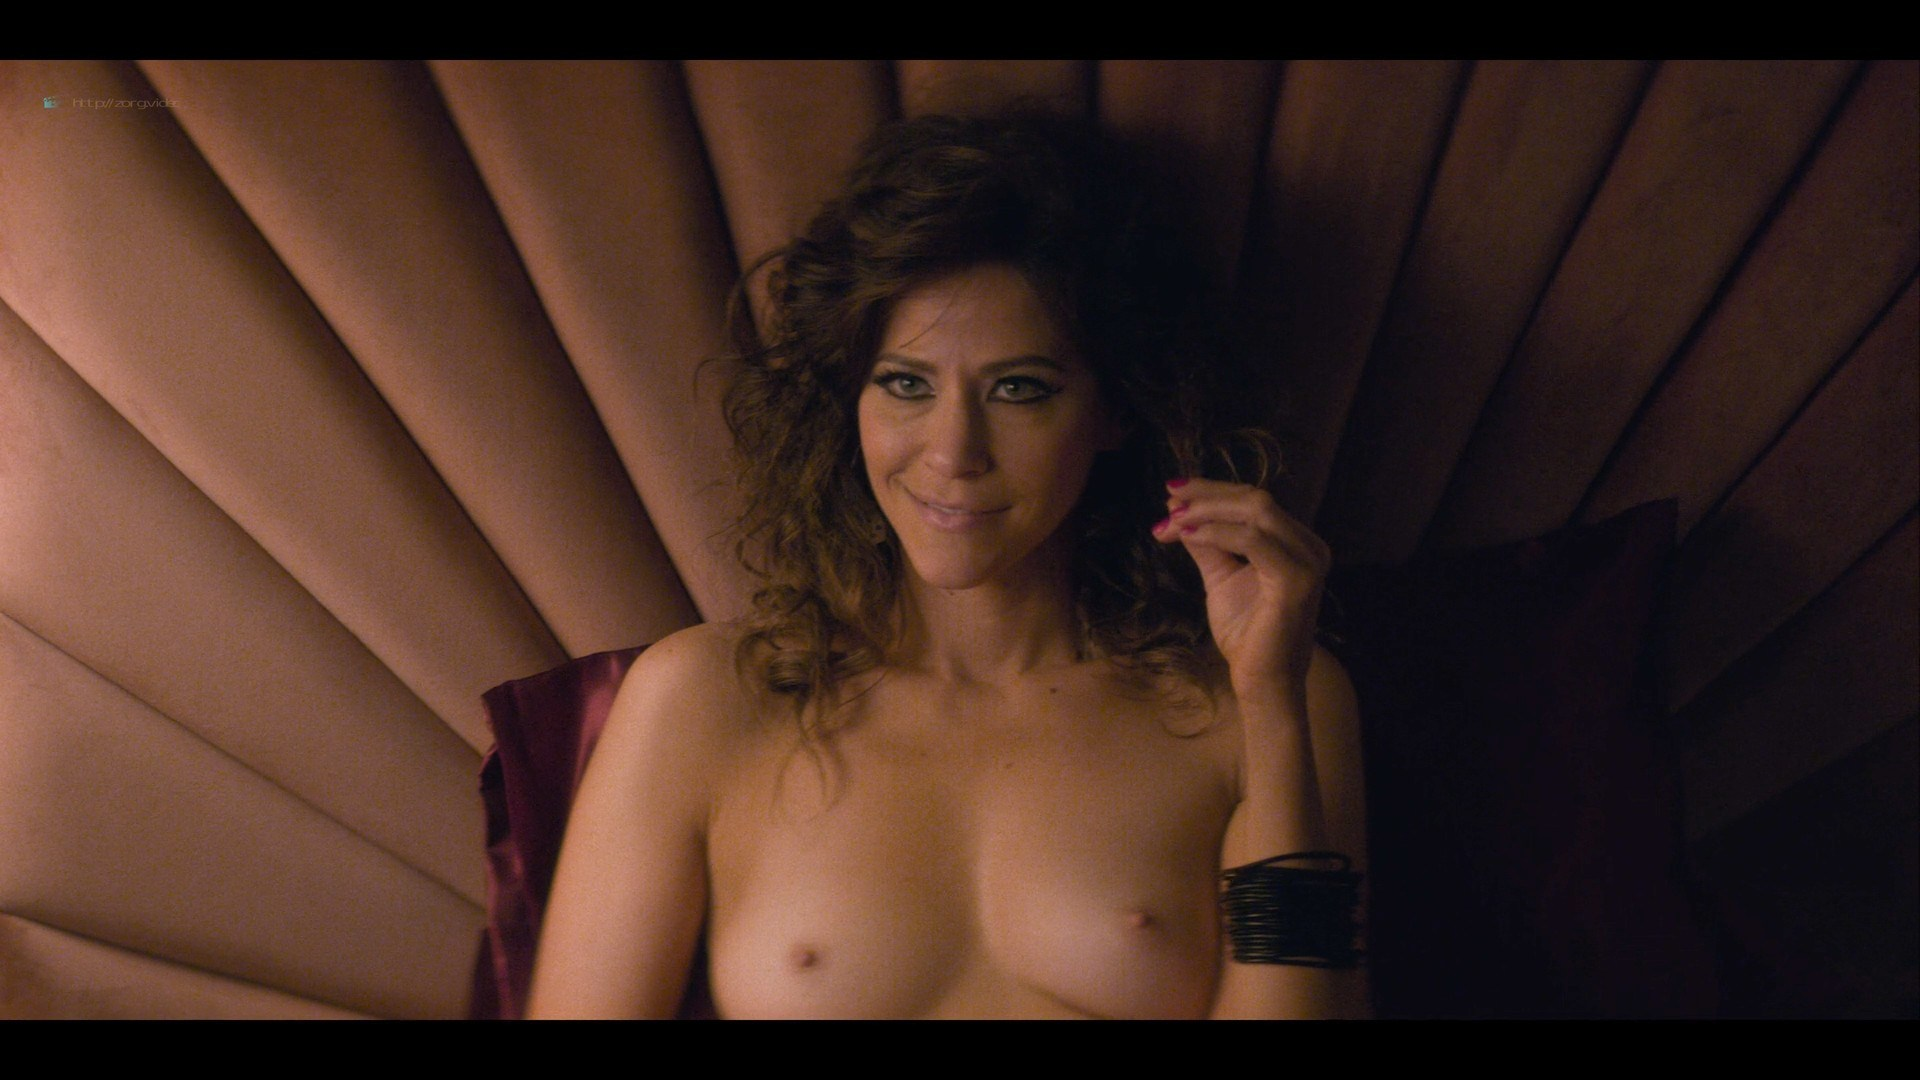 0710213425772_09_Betty-Gilpin-nude-sex-Kate-Nash-sex-others-hot-Glow-2019-S3-HD-1080p-0010.jpg